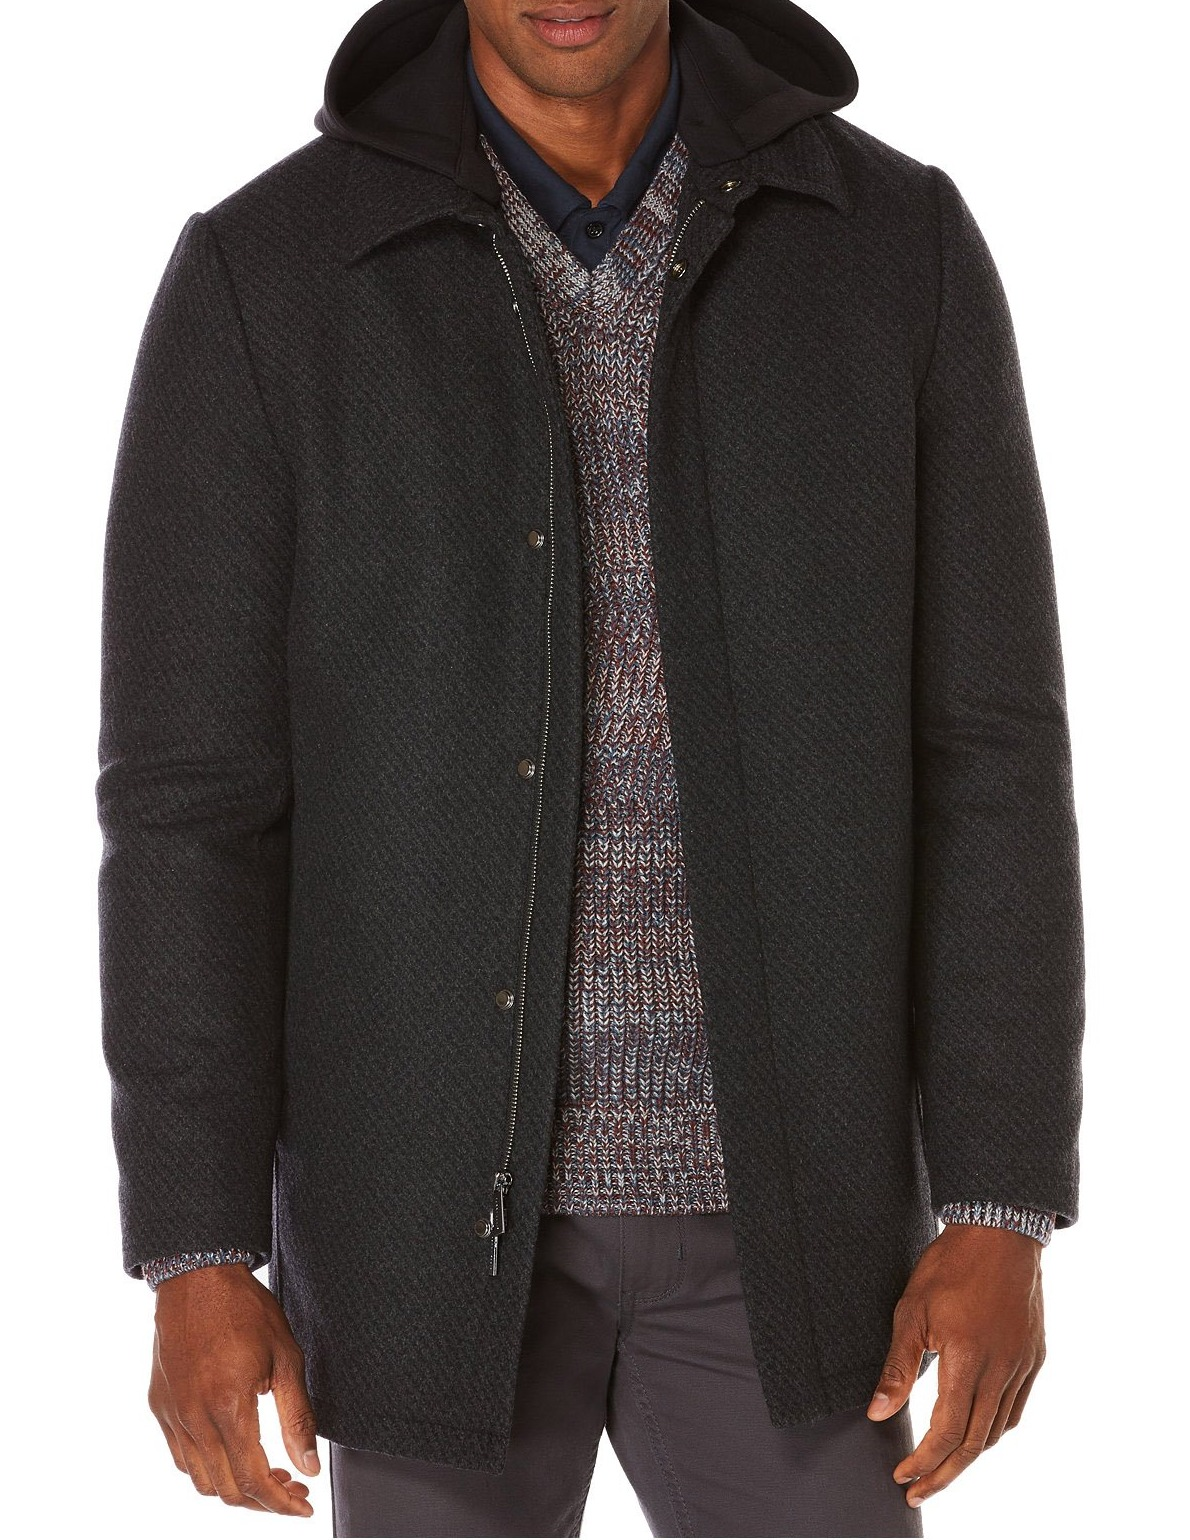 Perry Ellis New Gray Mens Size Small S Printed Hooded Coat Wool by Perry Ellis